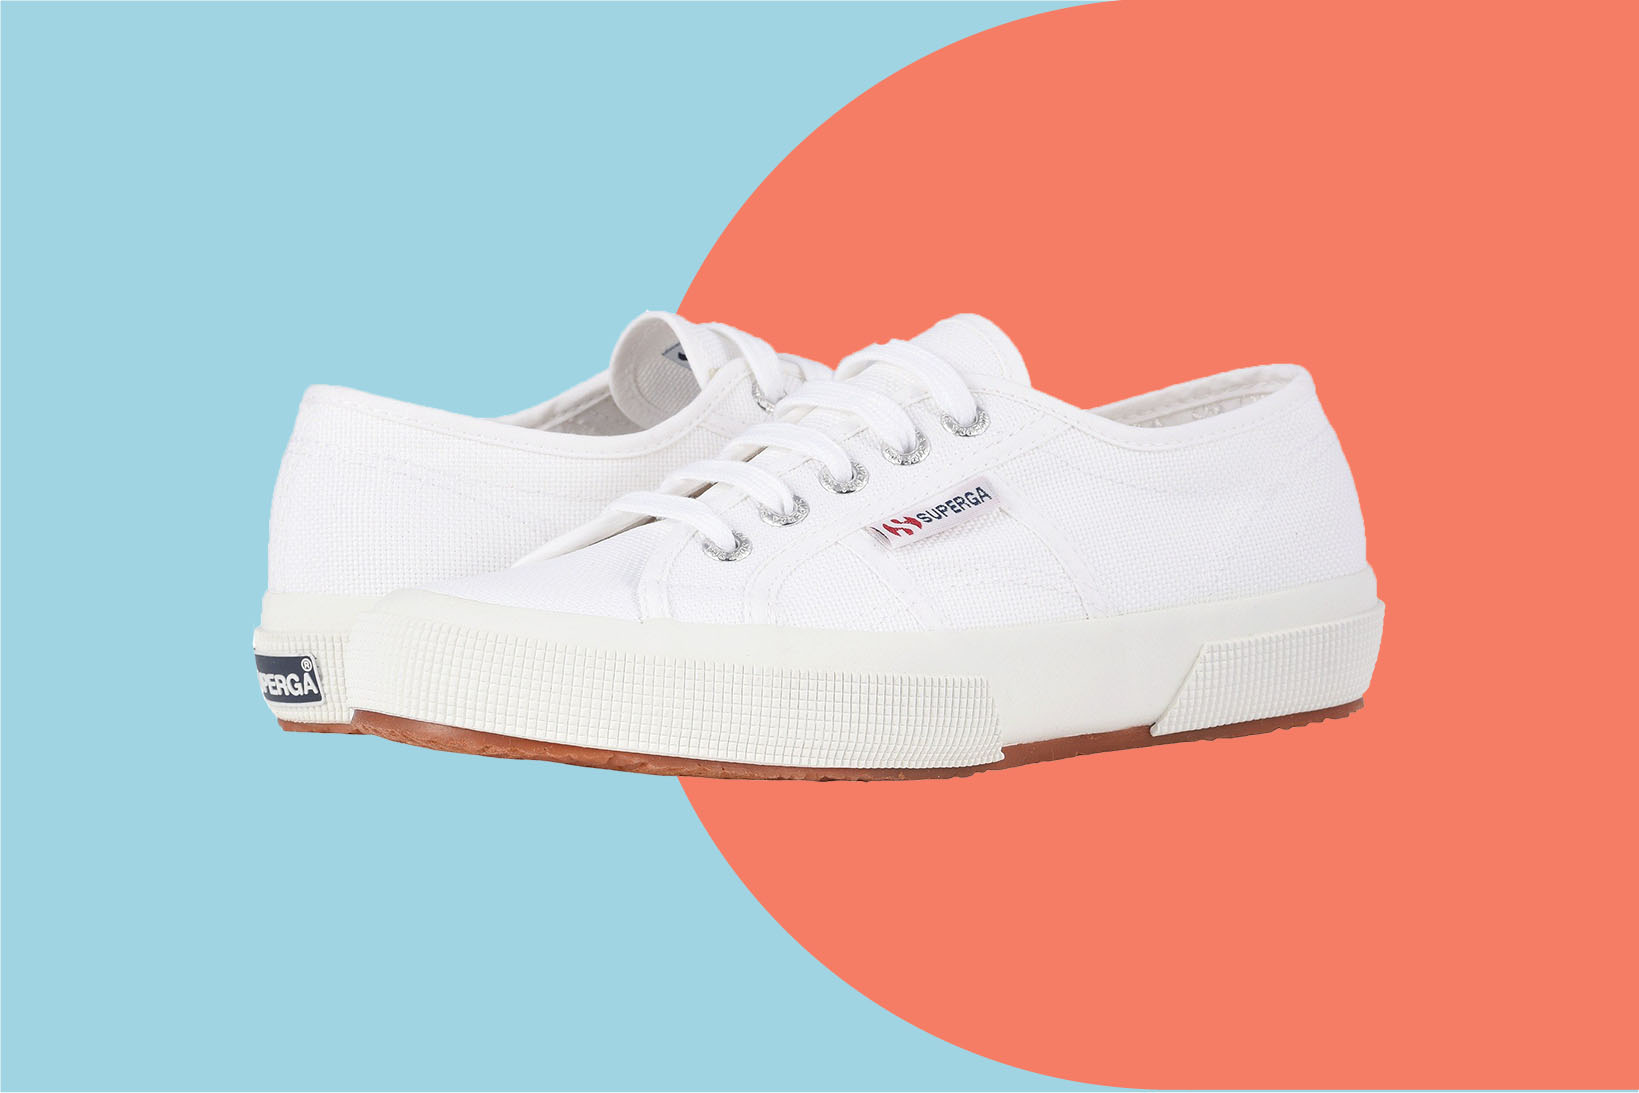 Zappos' Best-Selling Most Comfortable Shoes